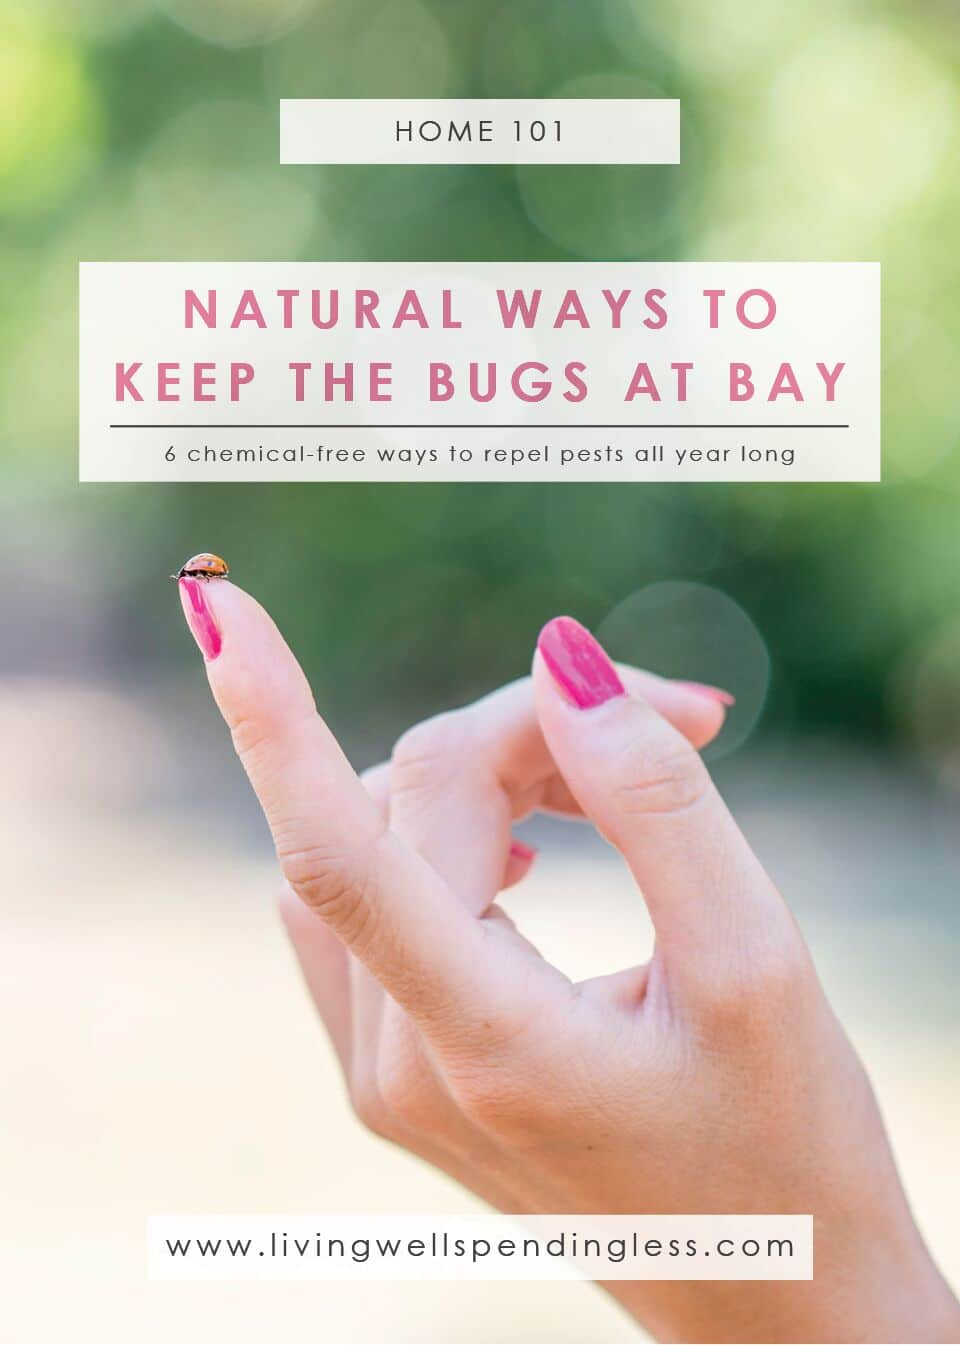 Natural Bug Repellant | Summer Tips | All Natural Solutions | Gardening Tips to Keep Bugs Away